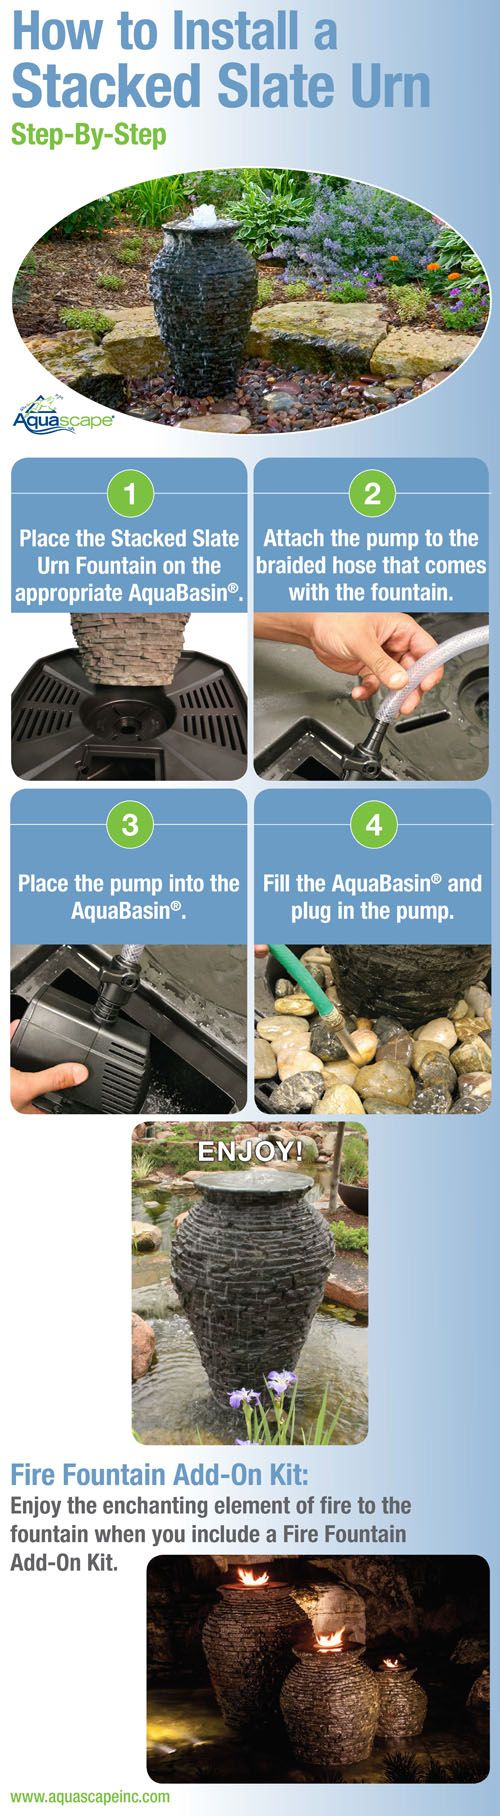 How to Install an Aquascape Fountain